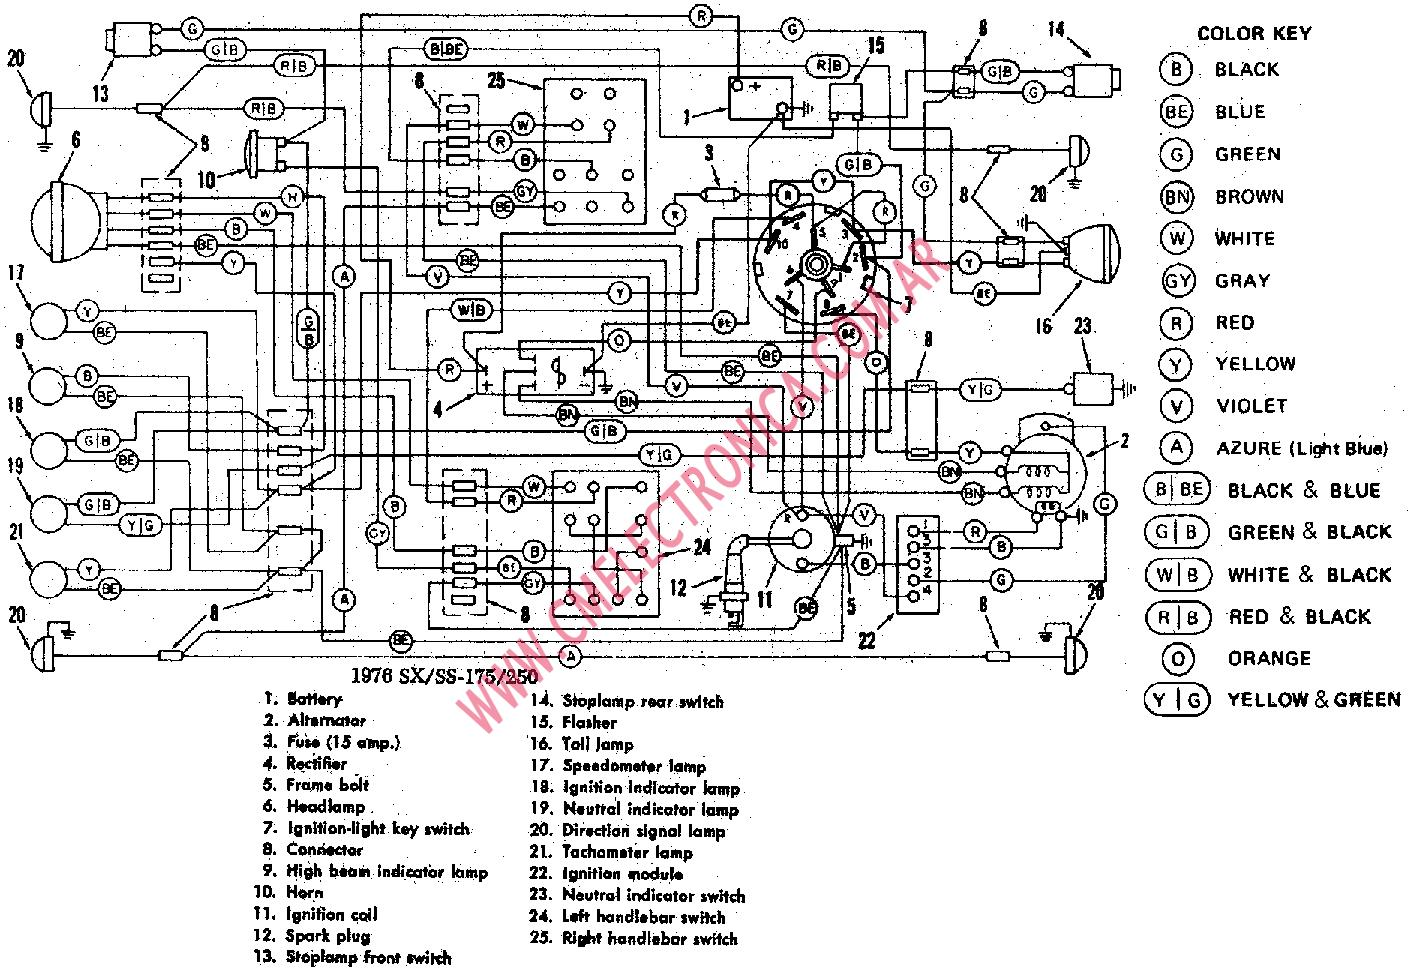 Zr 500 Motor Diagram, Zr, Free Engine Image For User